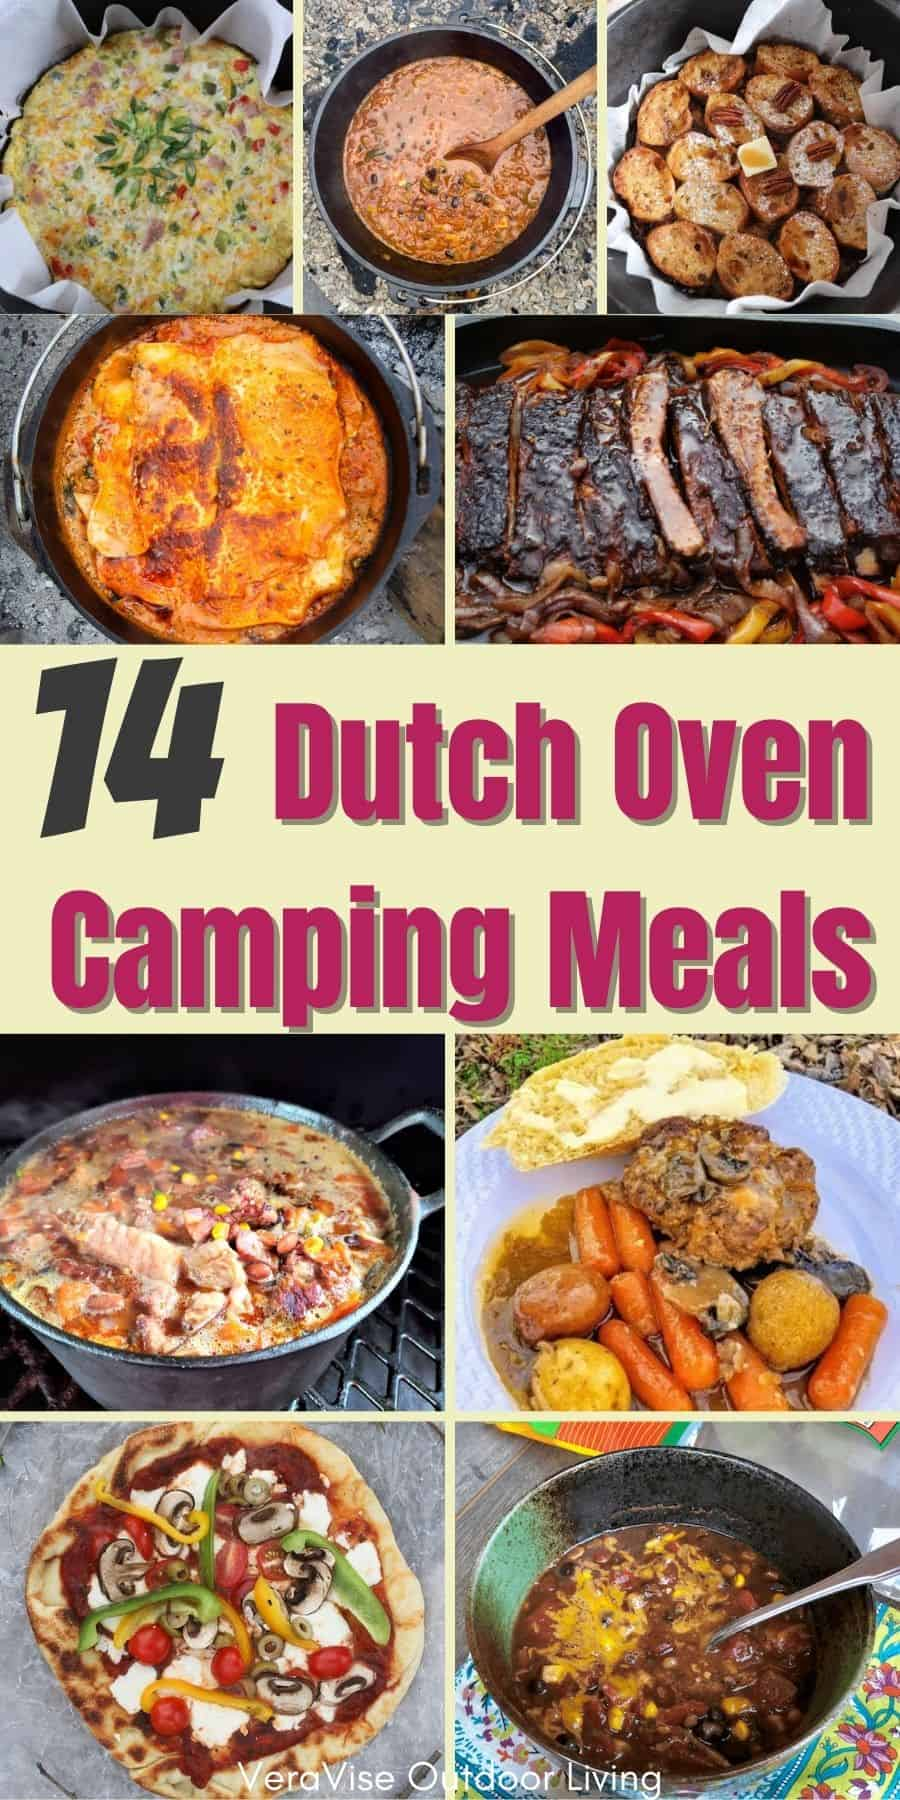 14 Dutch Oven Camping Meals